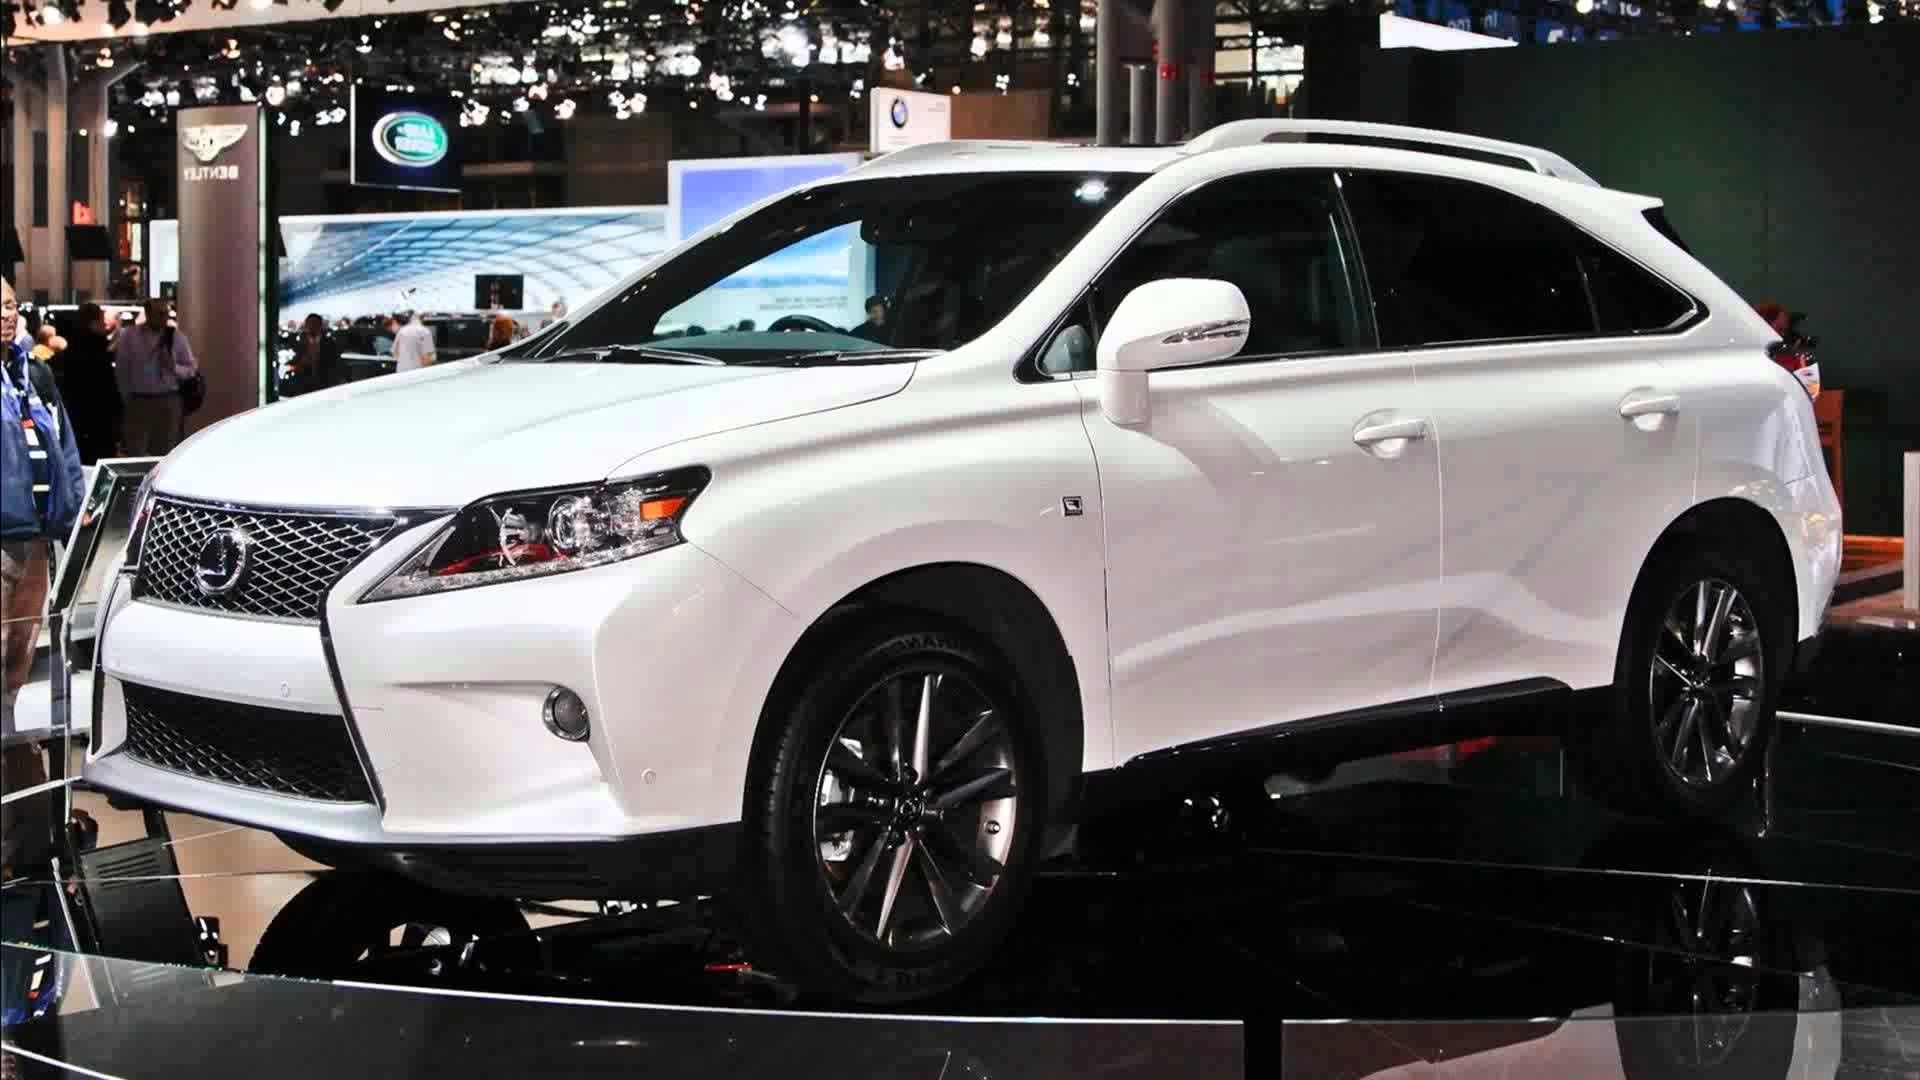 d car buyers articles power lexus for new j guides suv cars